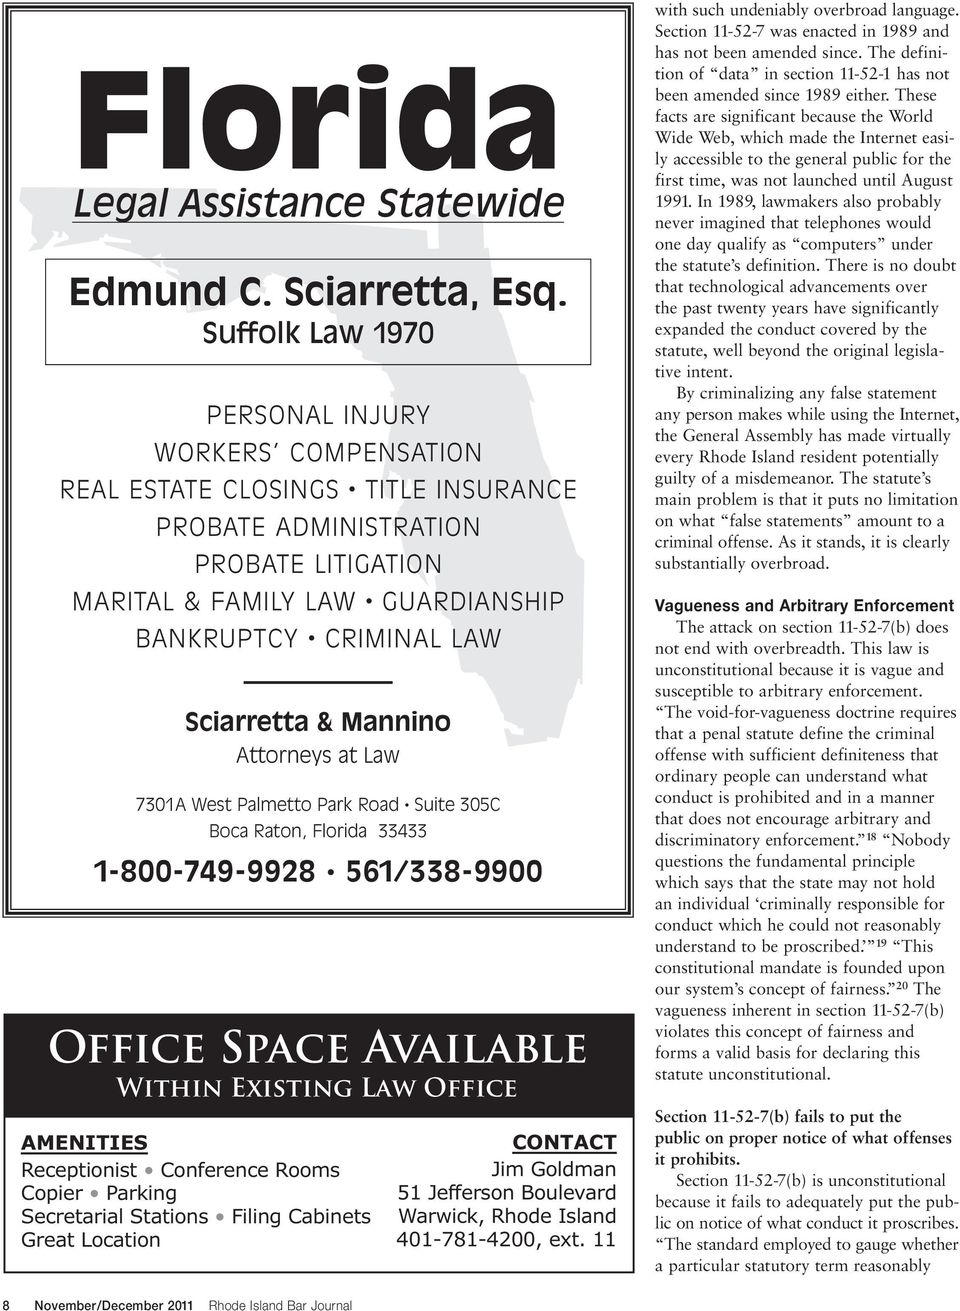 Sciarretta & Mannino Attorneys at Law 7301A West Palmetto Park Road Suite 305C Boca Raton, Florida 33433 1-800-749-9928 561/338-9900 Office Space Available Within Existing Law Office AMENITIES